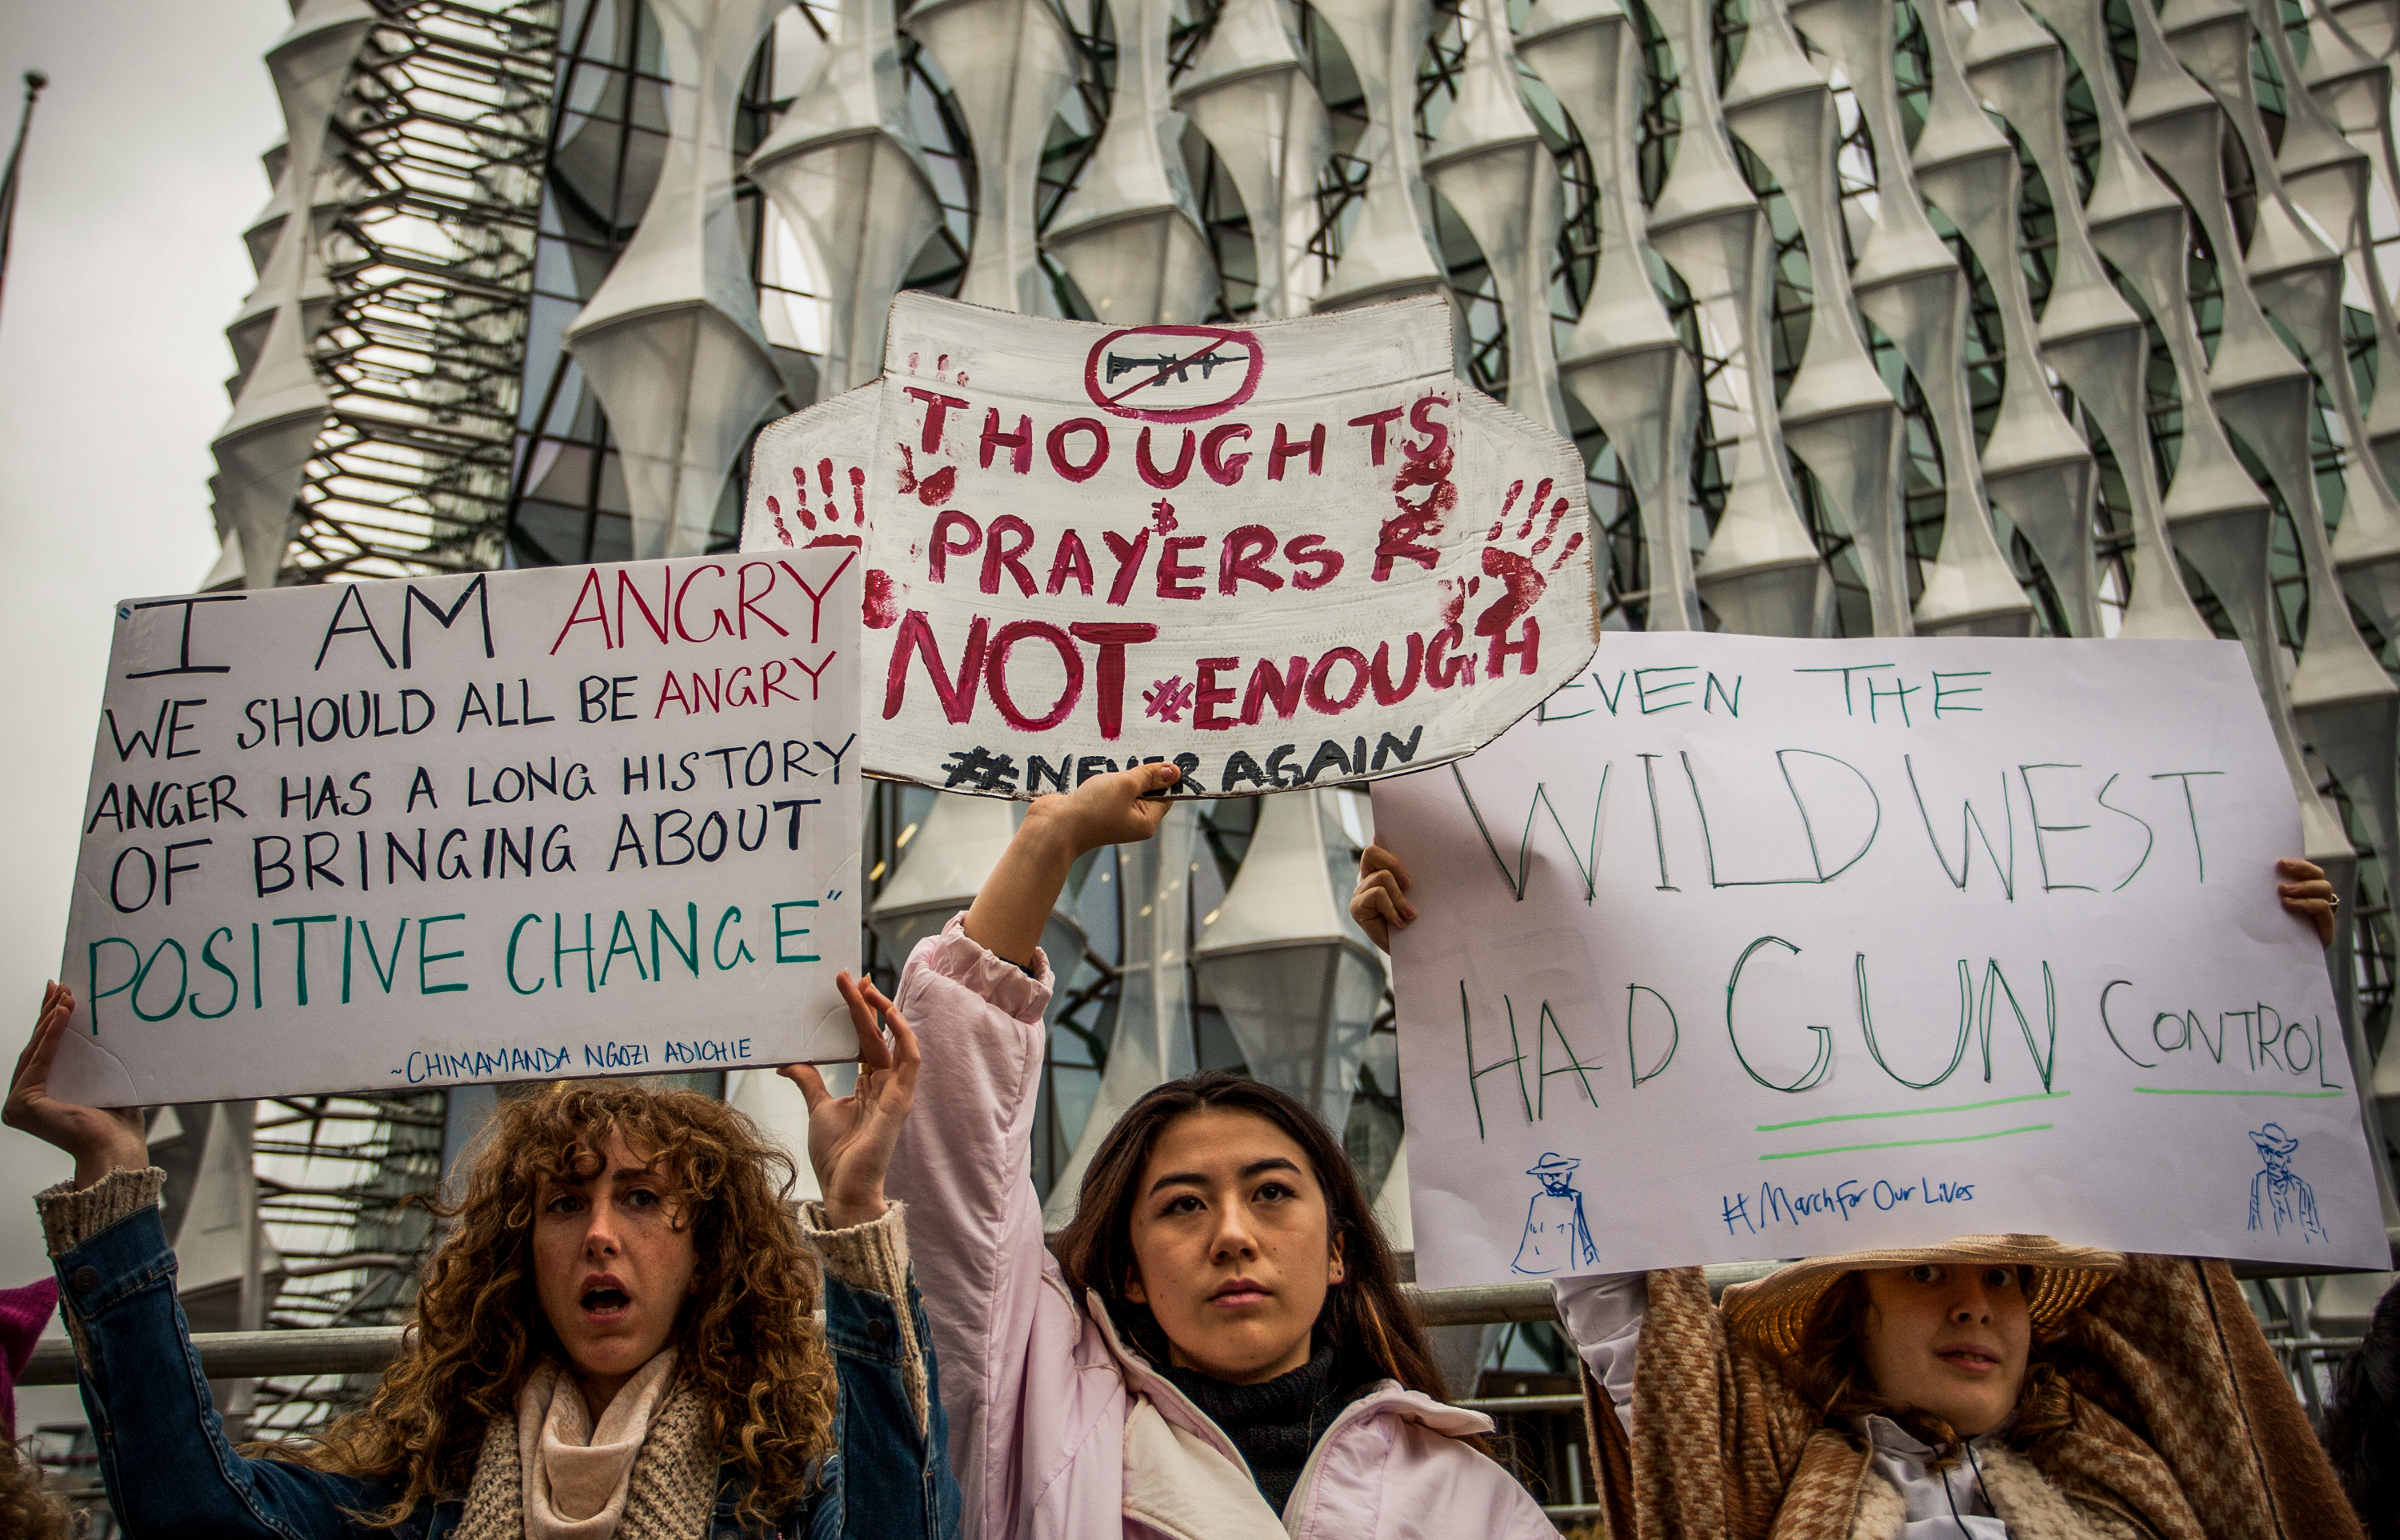 March for Our Lives event outside US Embassy, London. Led by young people demanding tighter gun control in the US